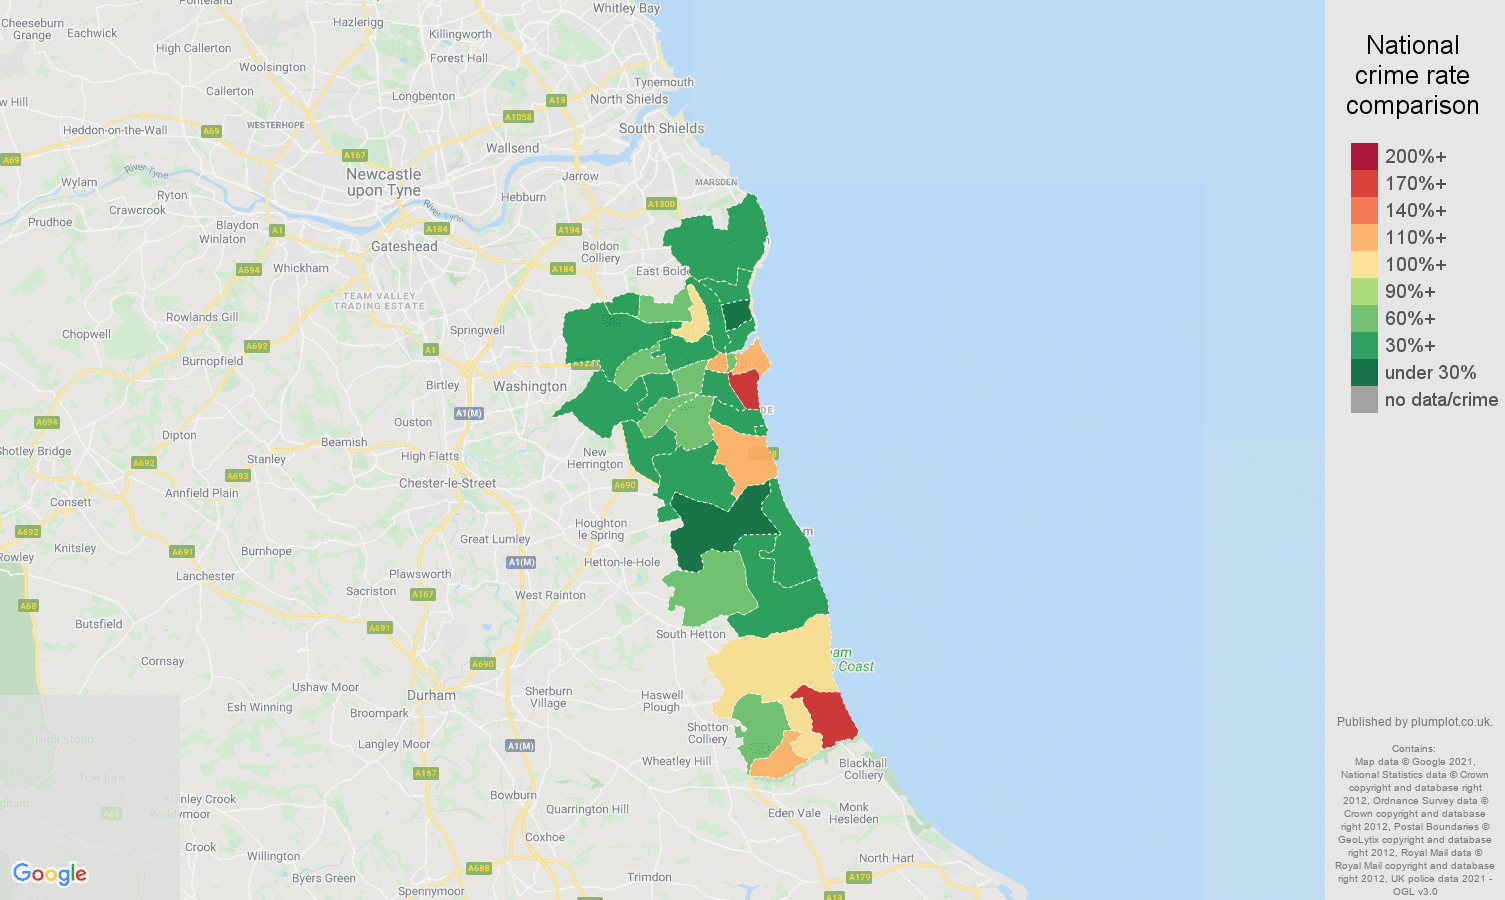 Sunderland drugs crime rate comparison map